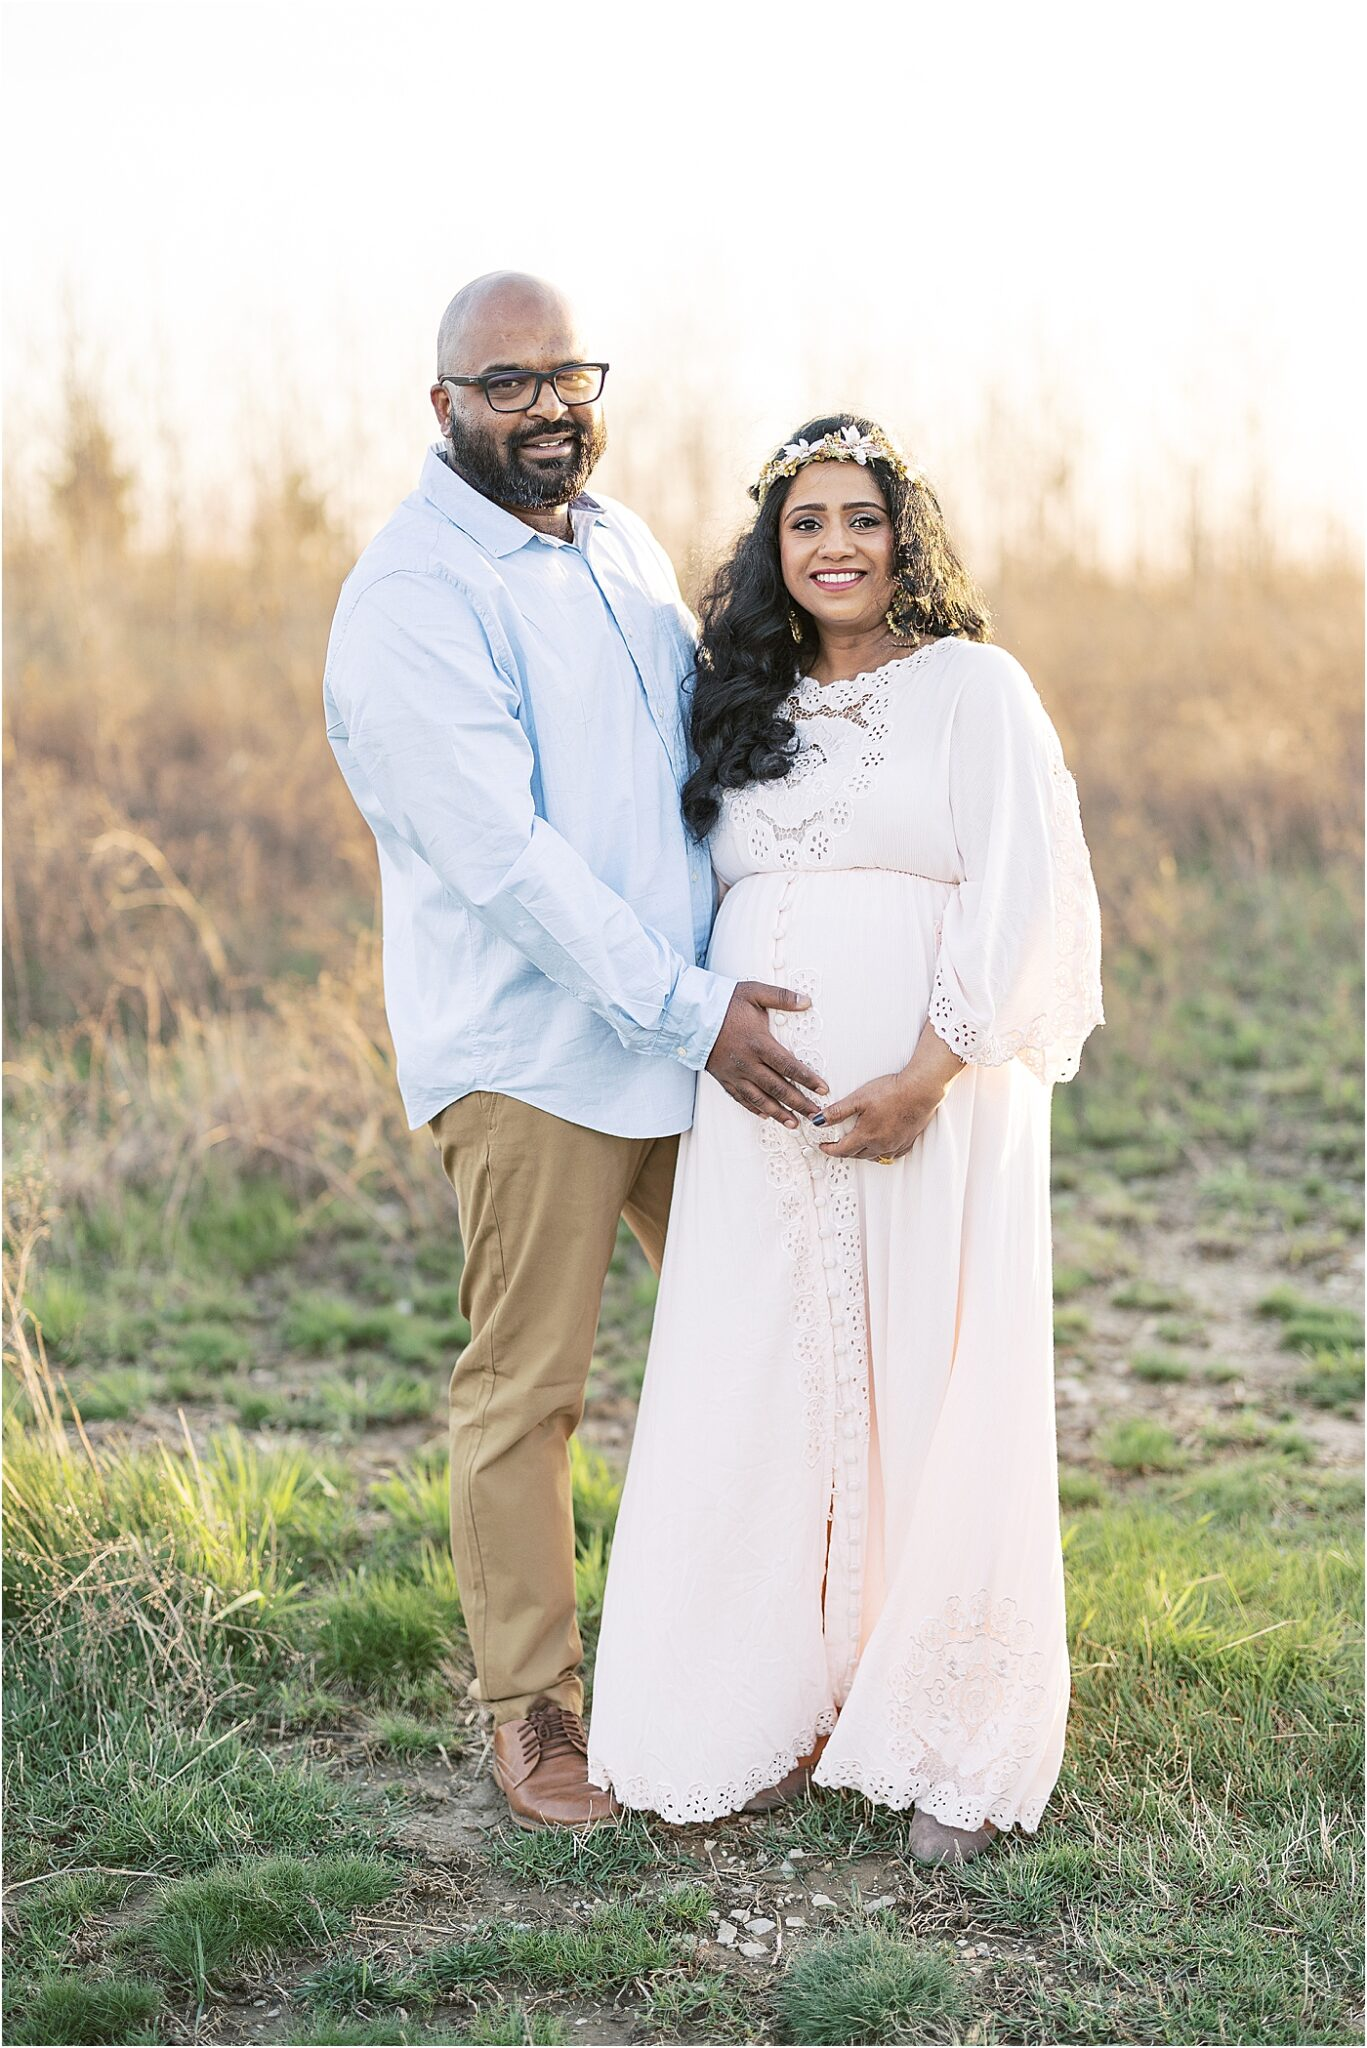 Parents to be during maternity photos with Lindsay Konopa Photography in Fishers Indiana.